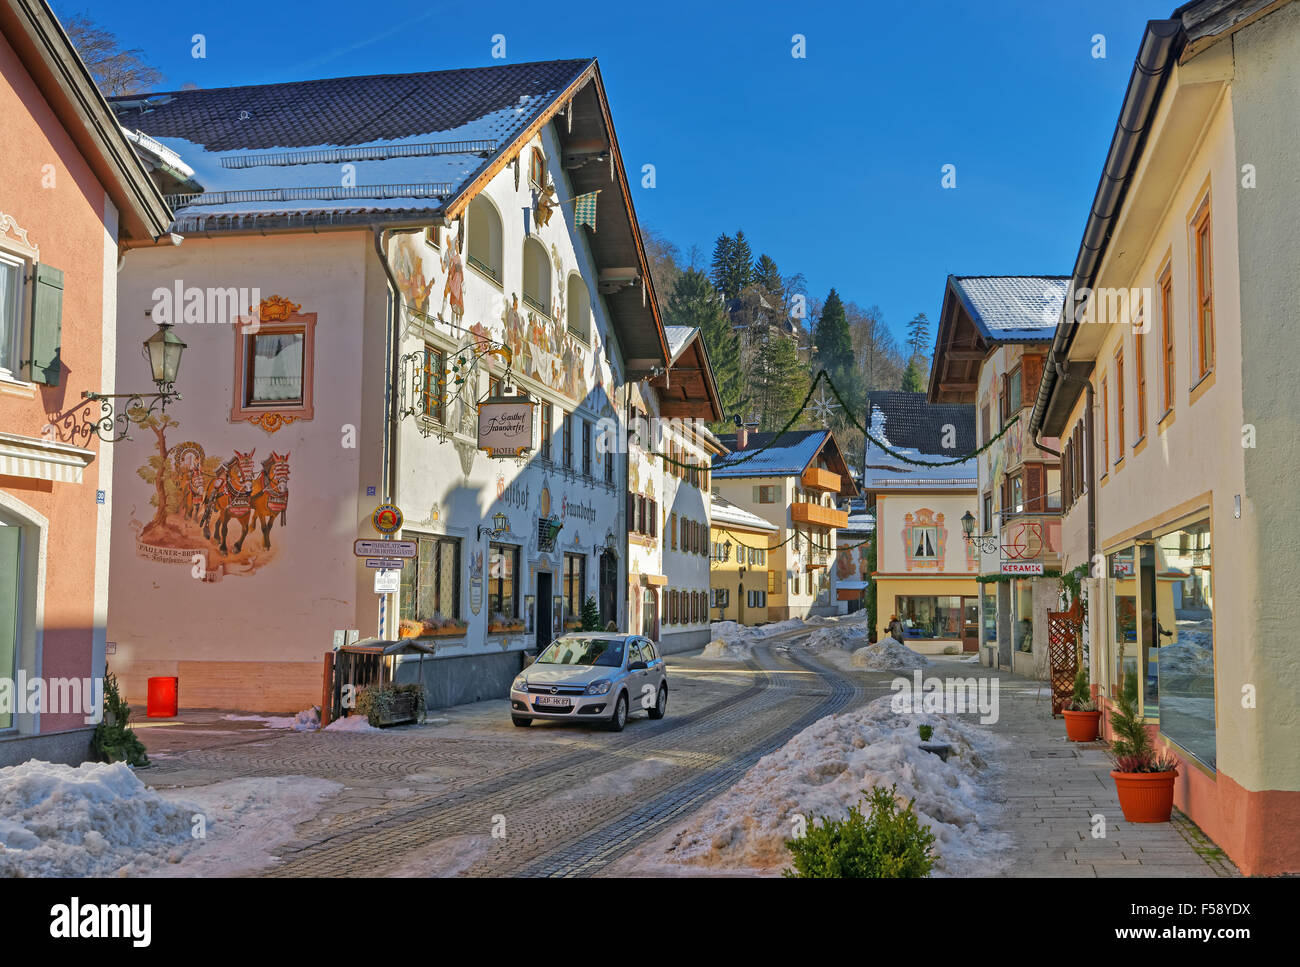 Enchanting Upper Bavarian-styled homes in Garmisch-Partenkirchen, adorned with painted scenes. Almost every buildings - Stock Image